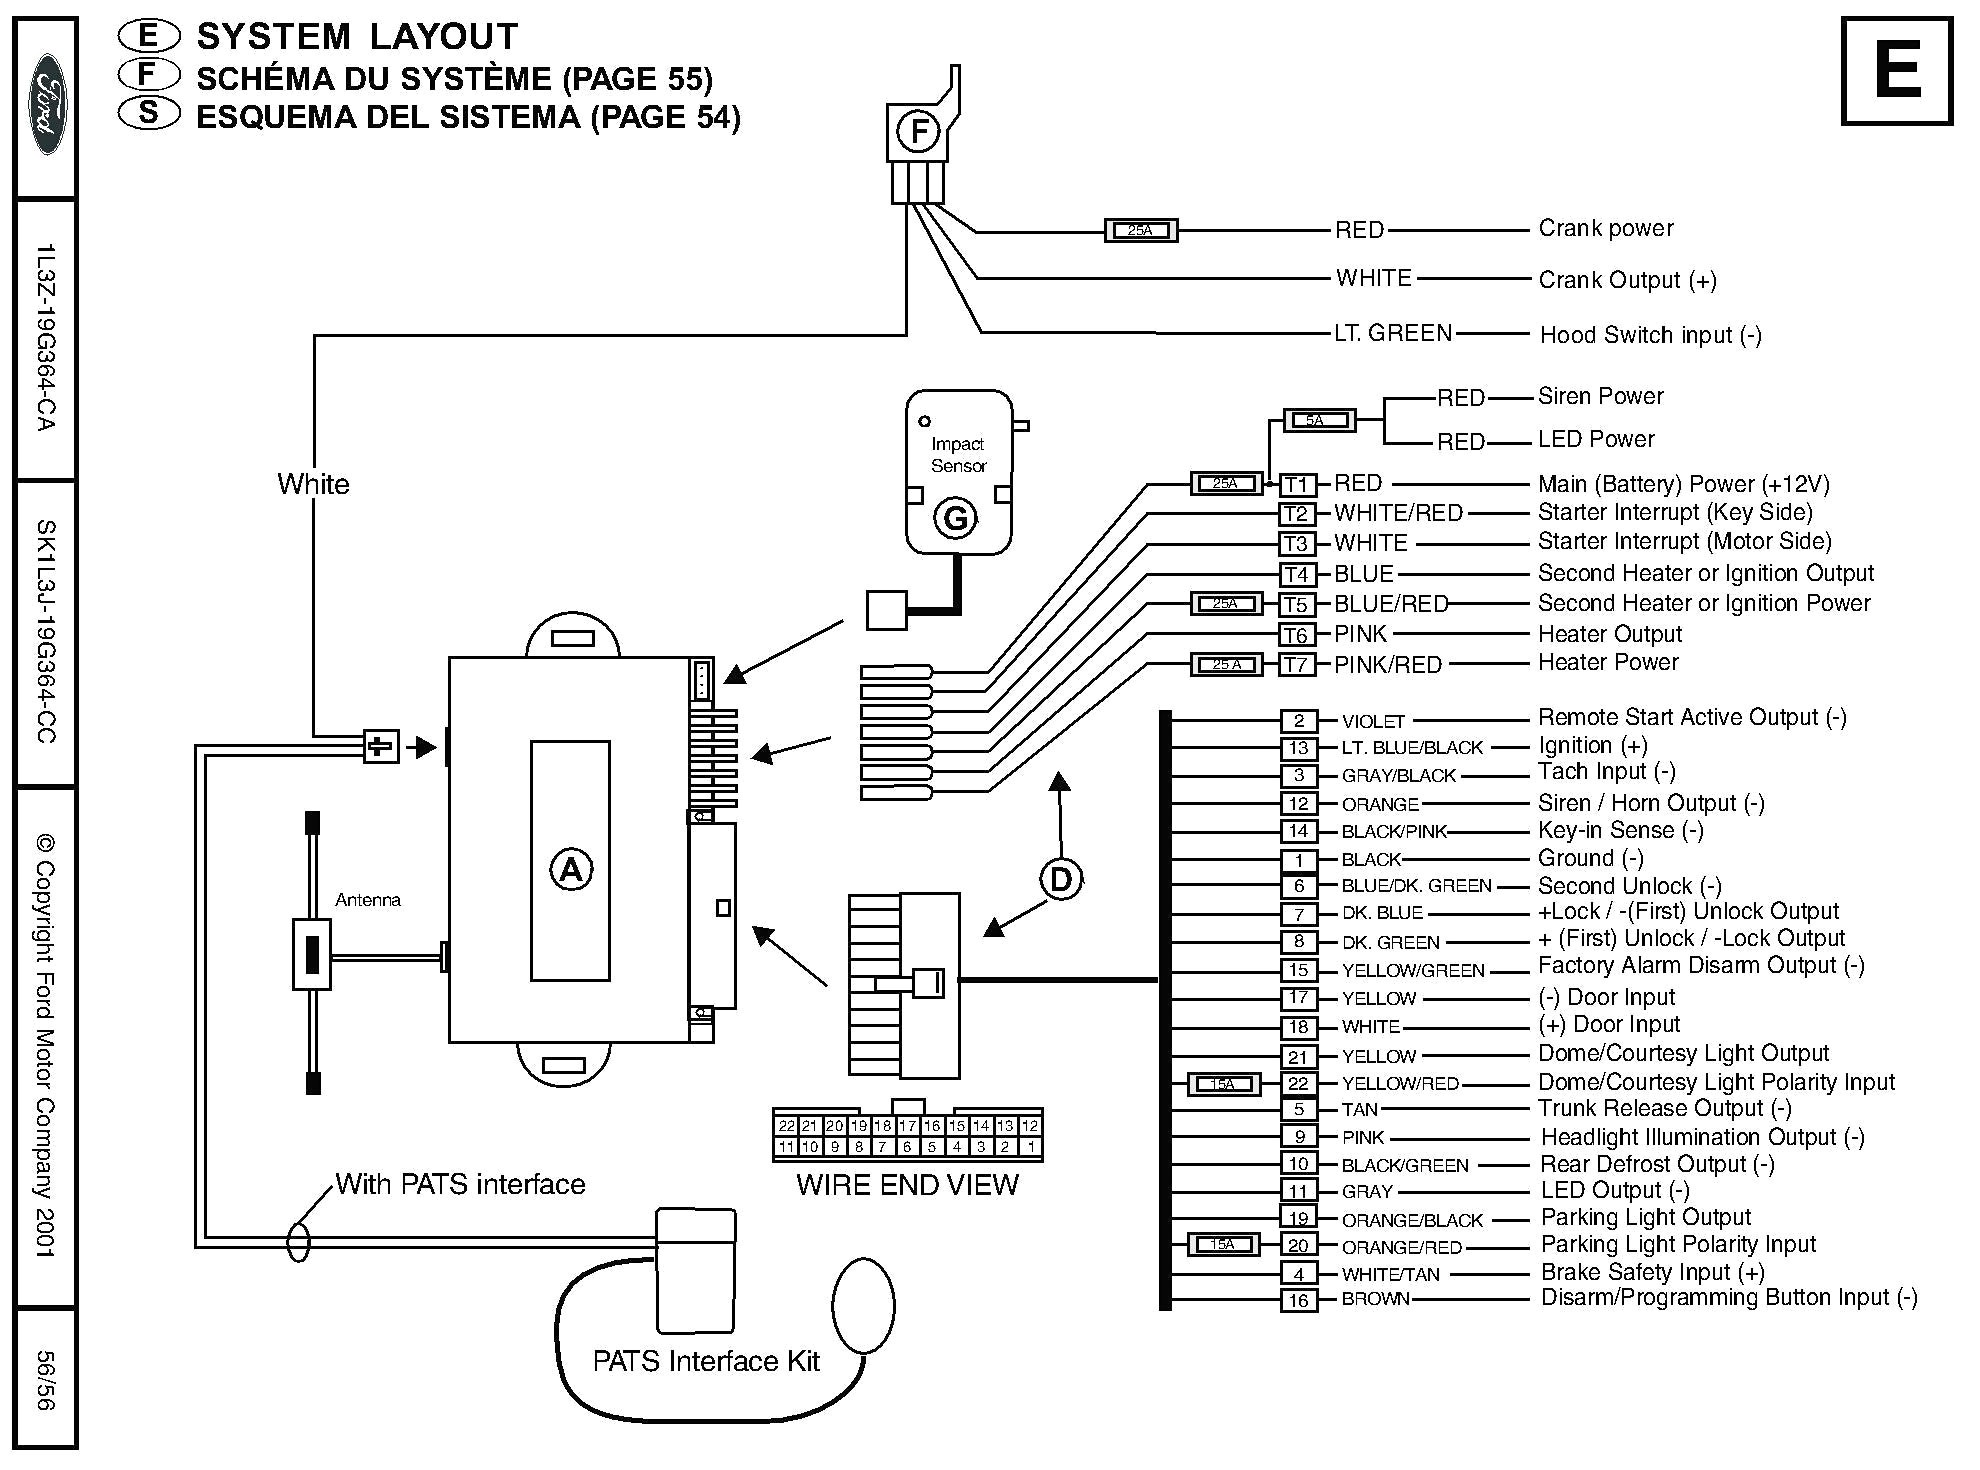 Car Alarm Wiring Diagrams Bulldog Car Alarm Wiring Diagram Image Of Car Alarm Wiring Diagrams